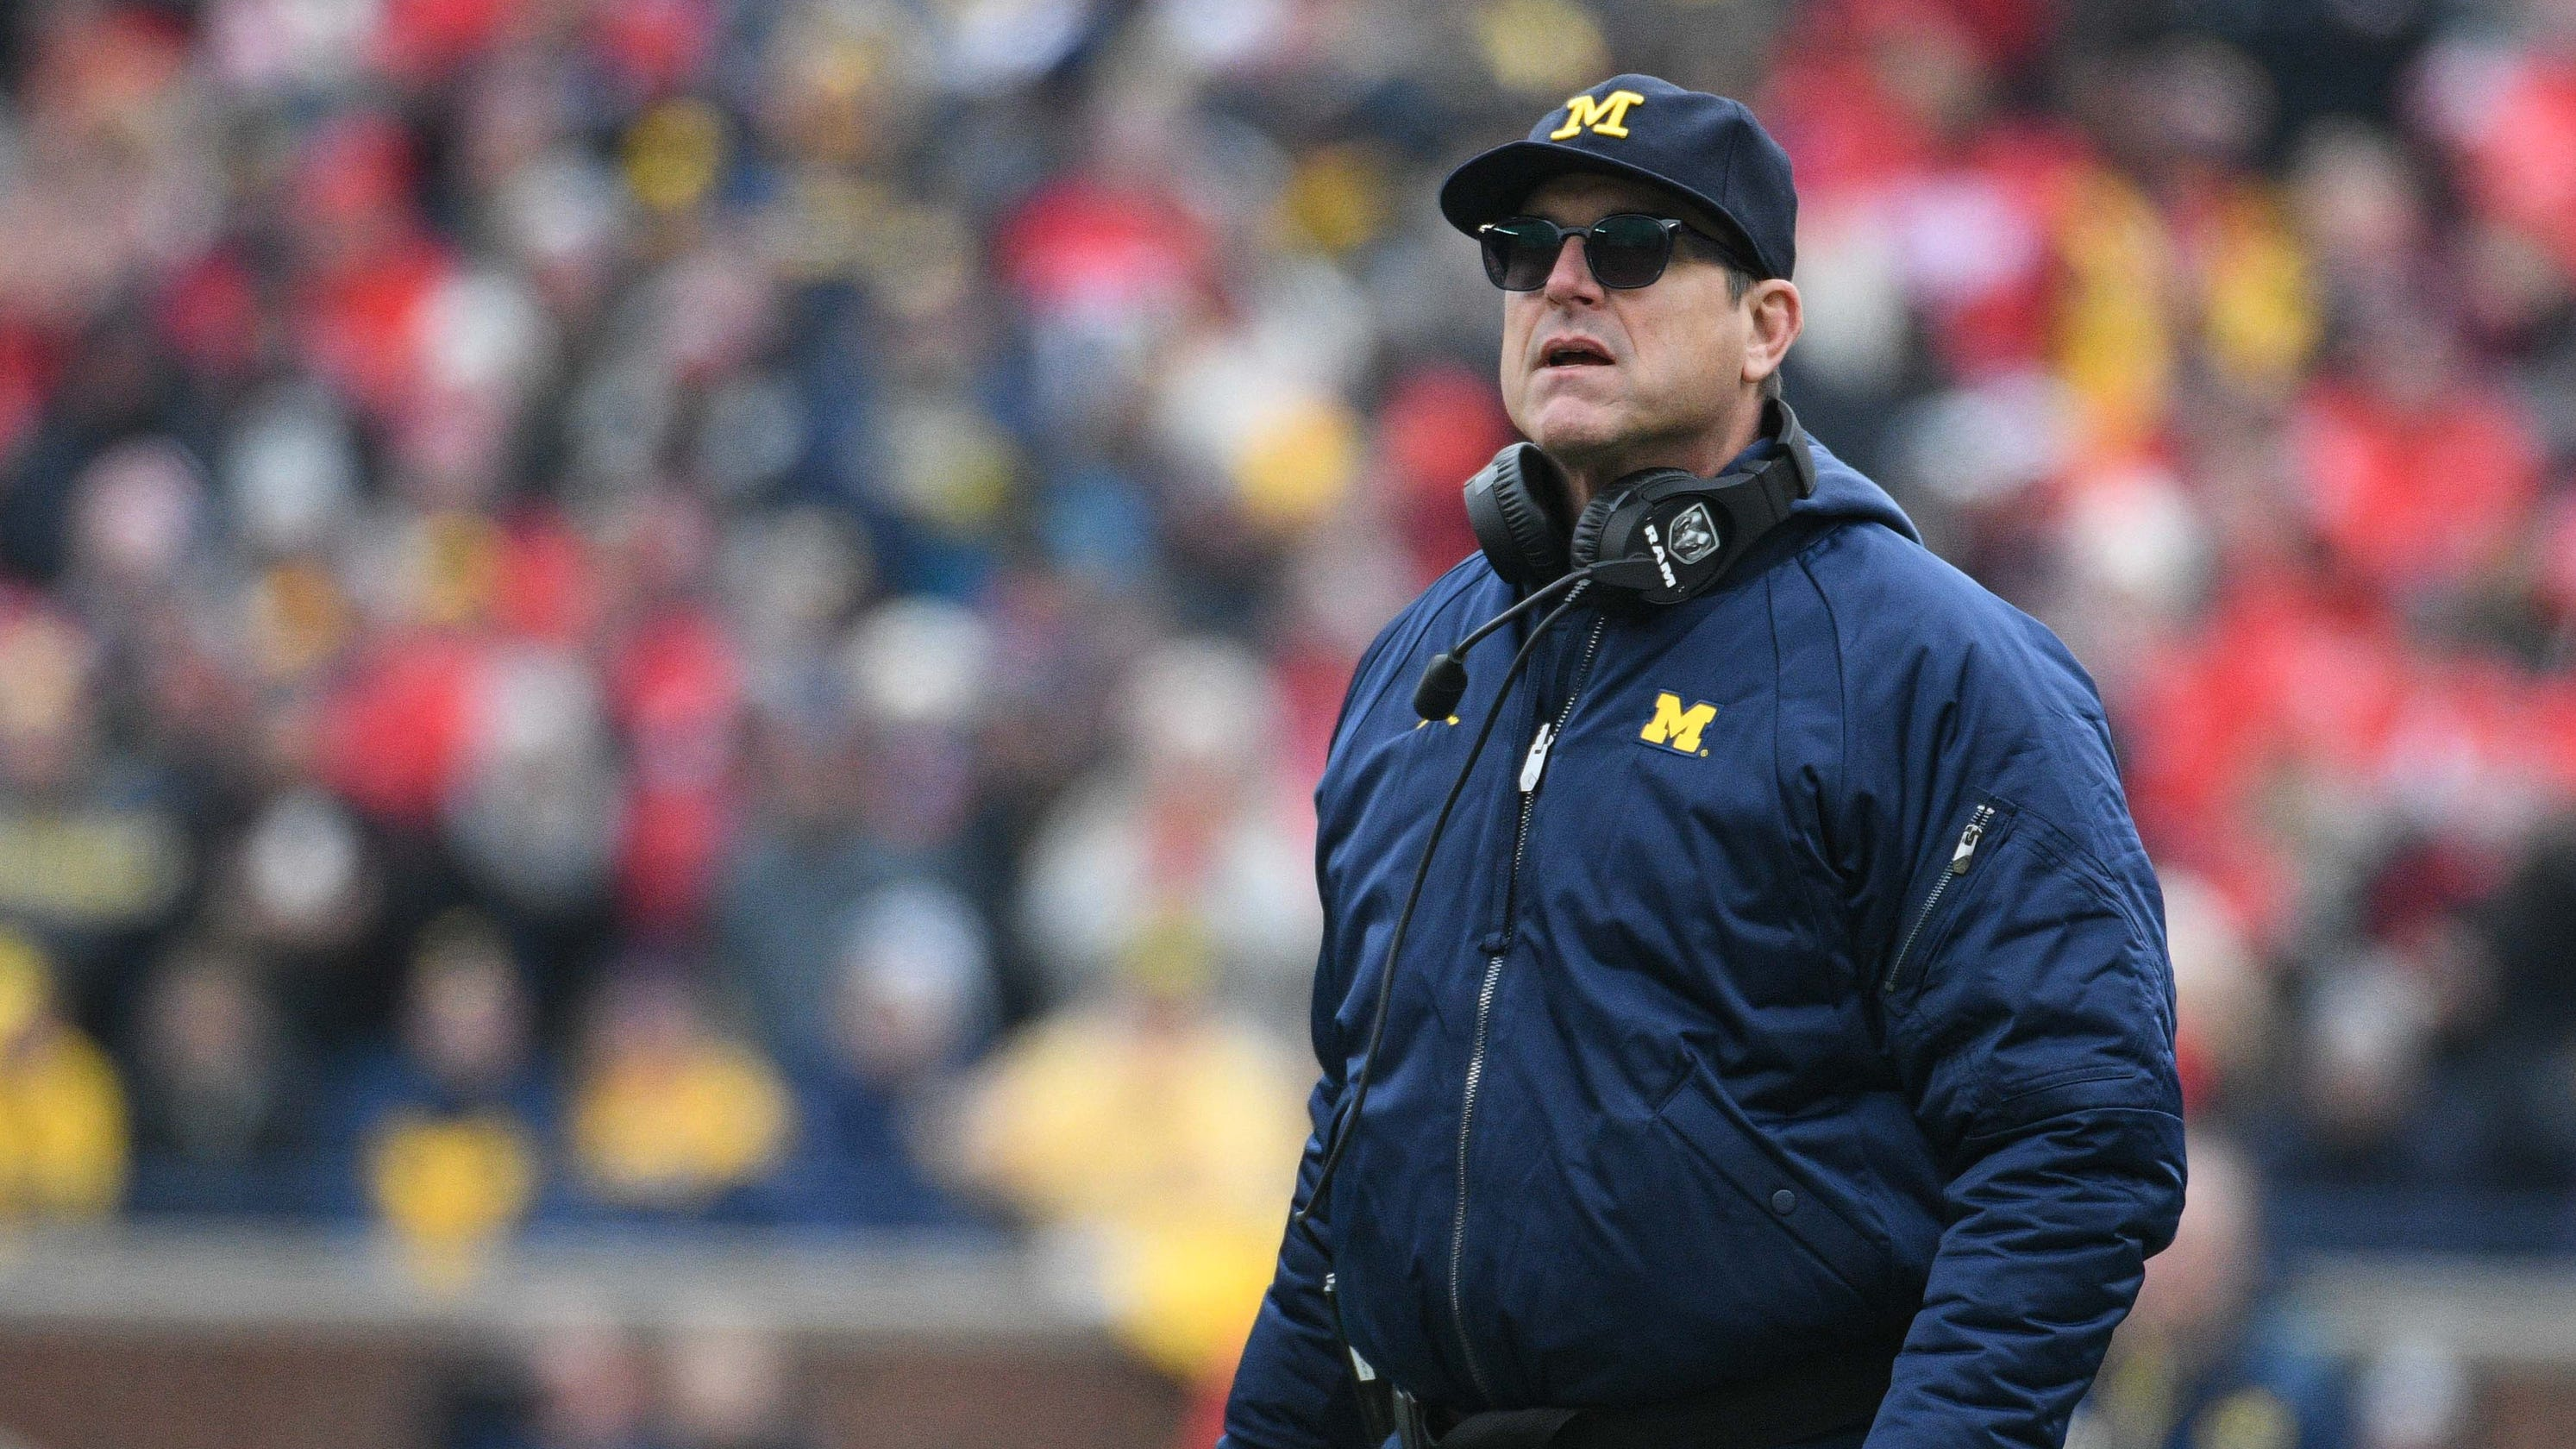 Michigan football coach Jim Harbaugh signs extension through 2025 at lower base salary